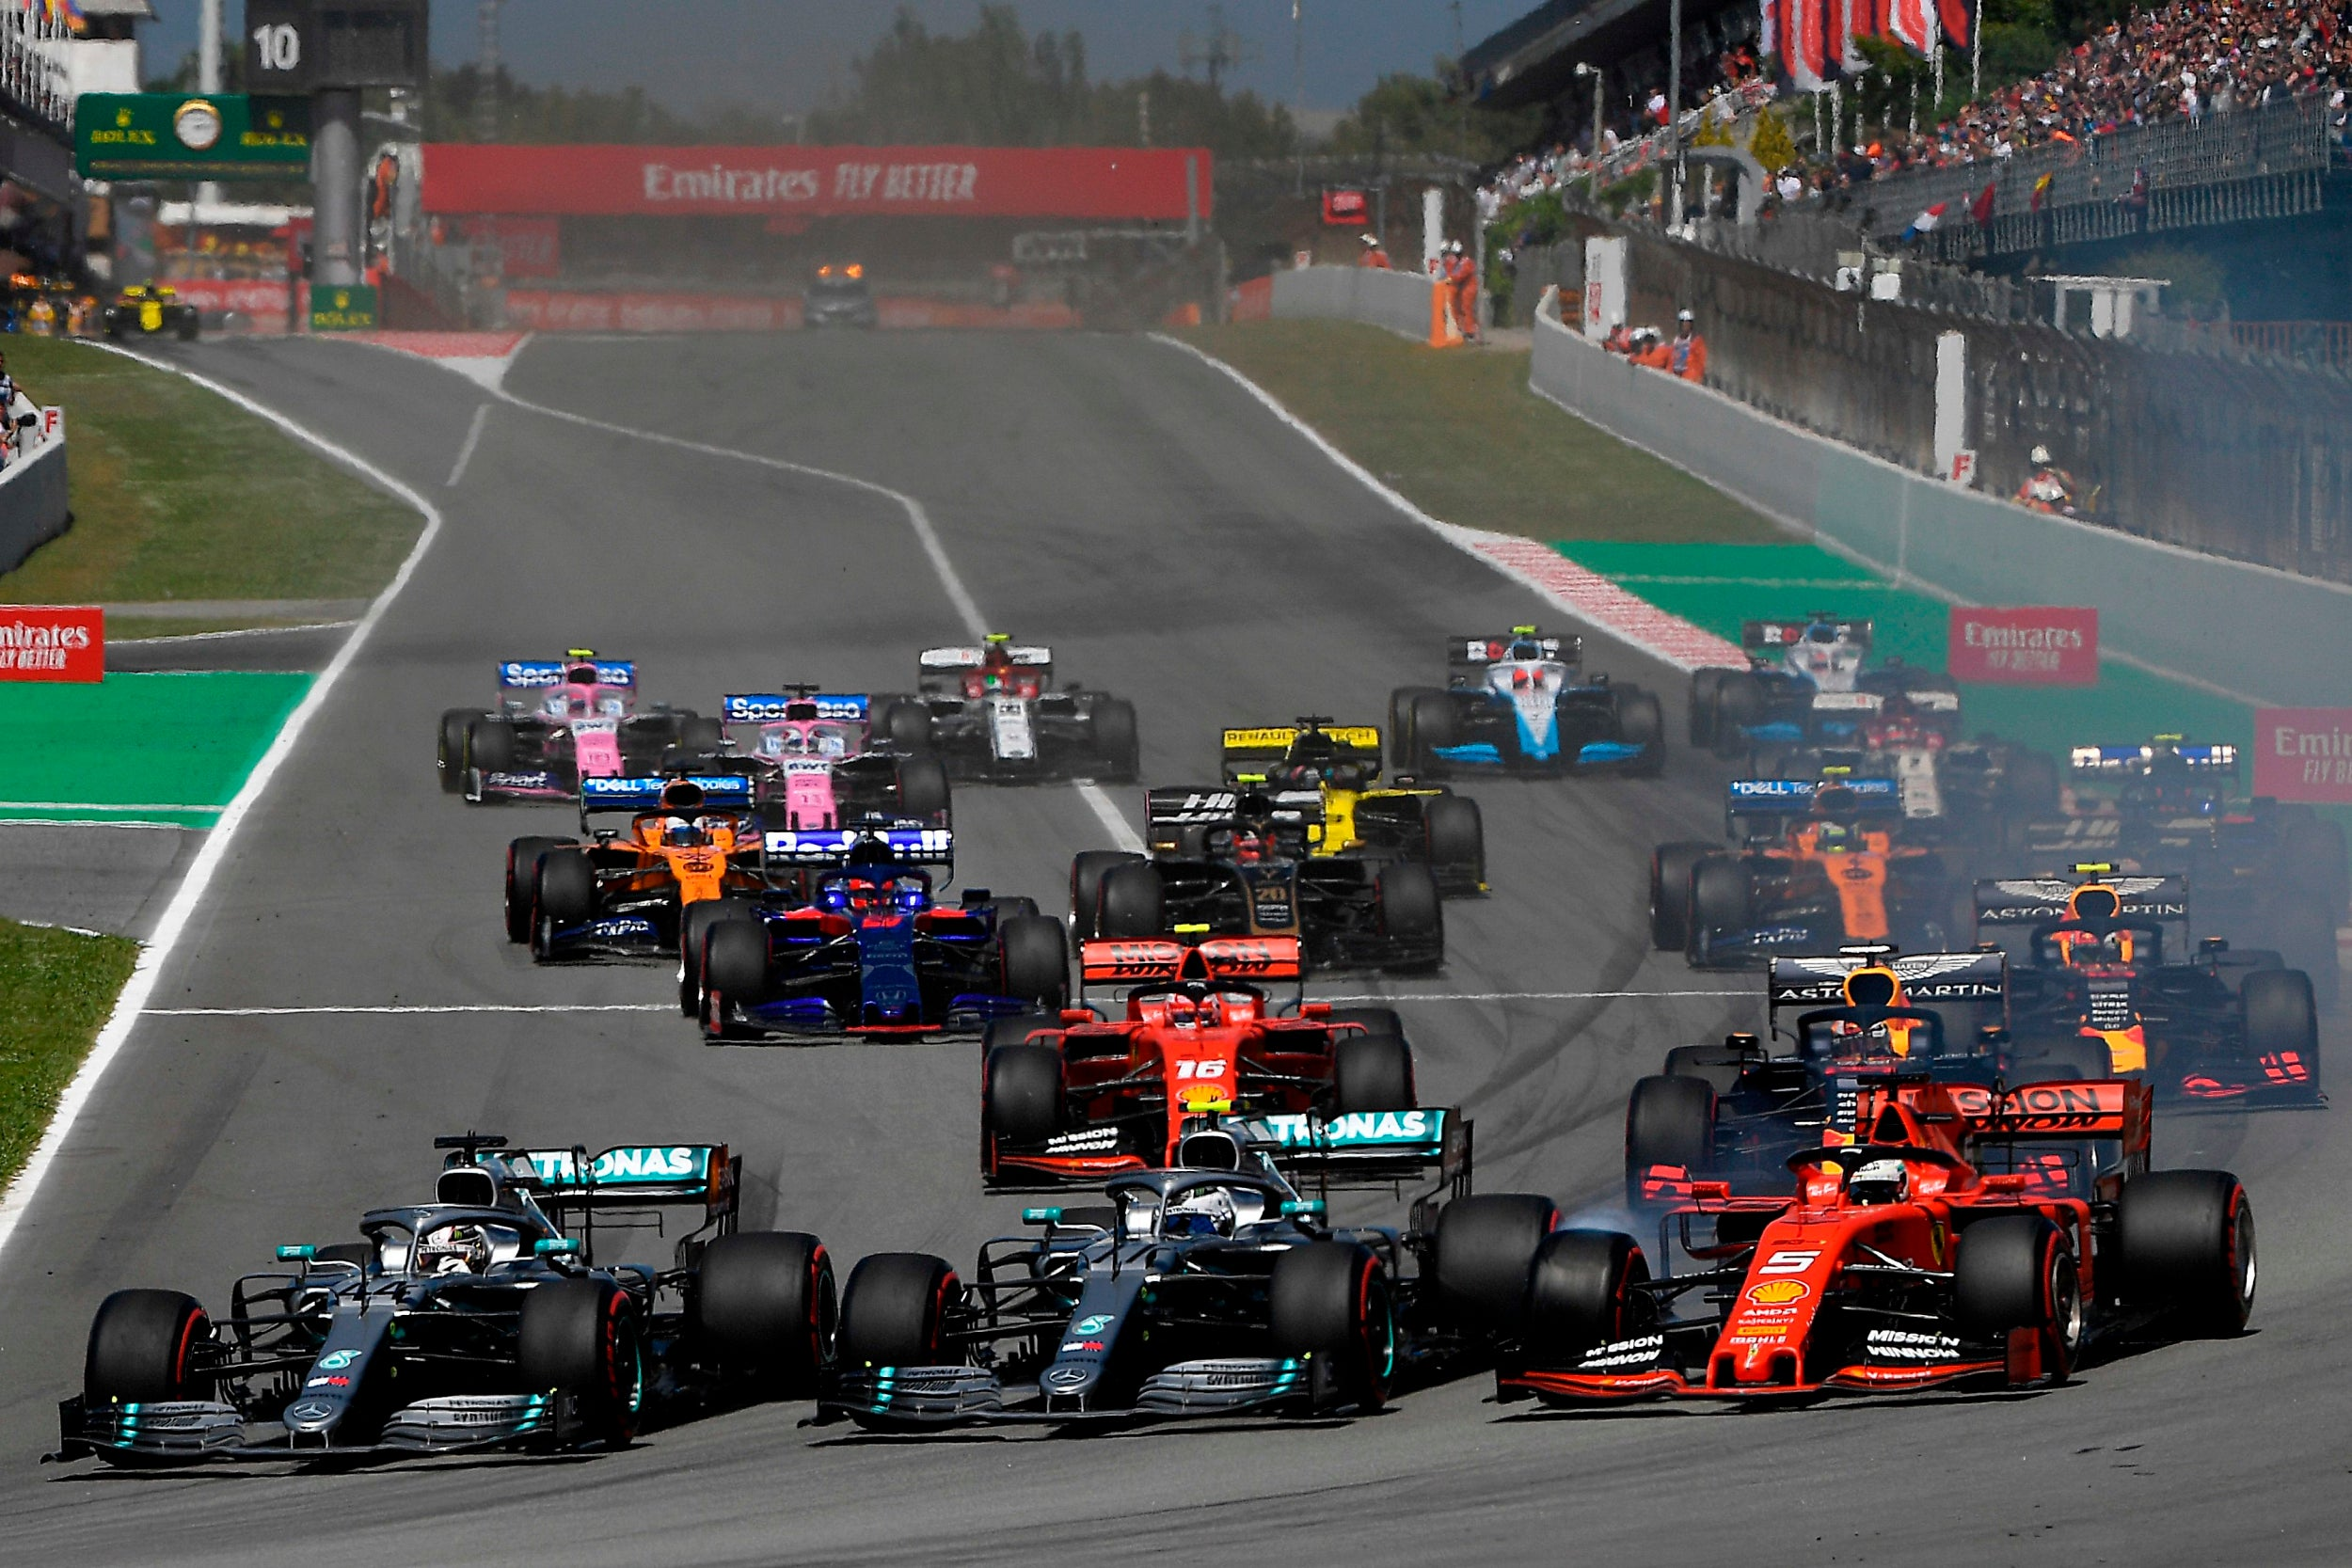 Lewis Hamilton inspired to Spanish Grand Prix win by young five-year